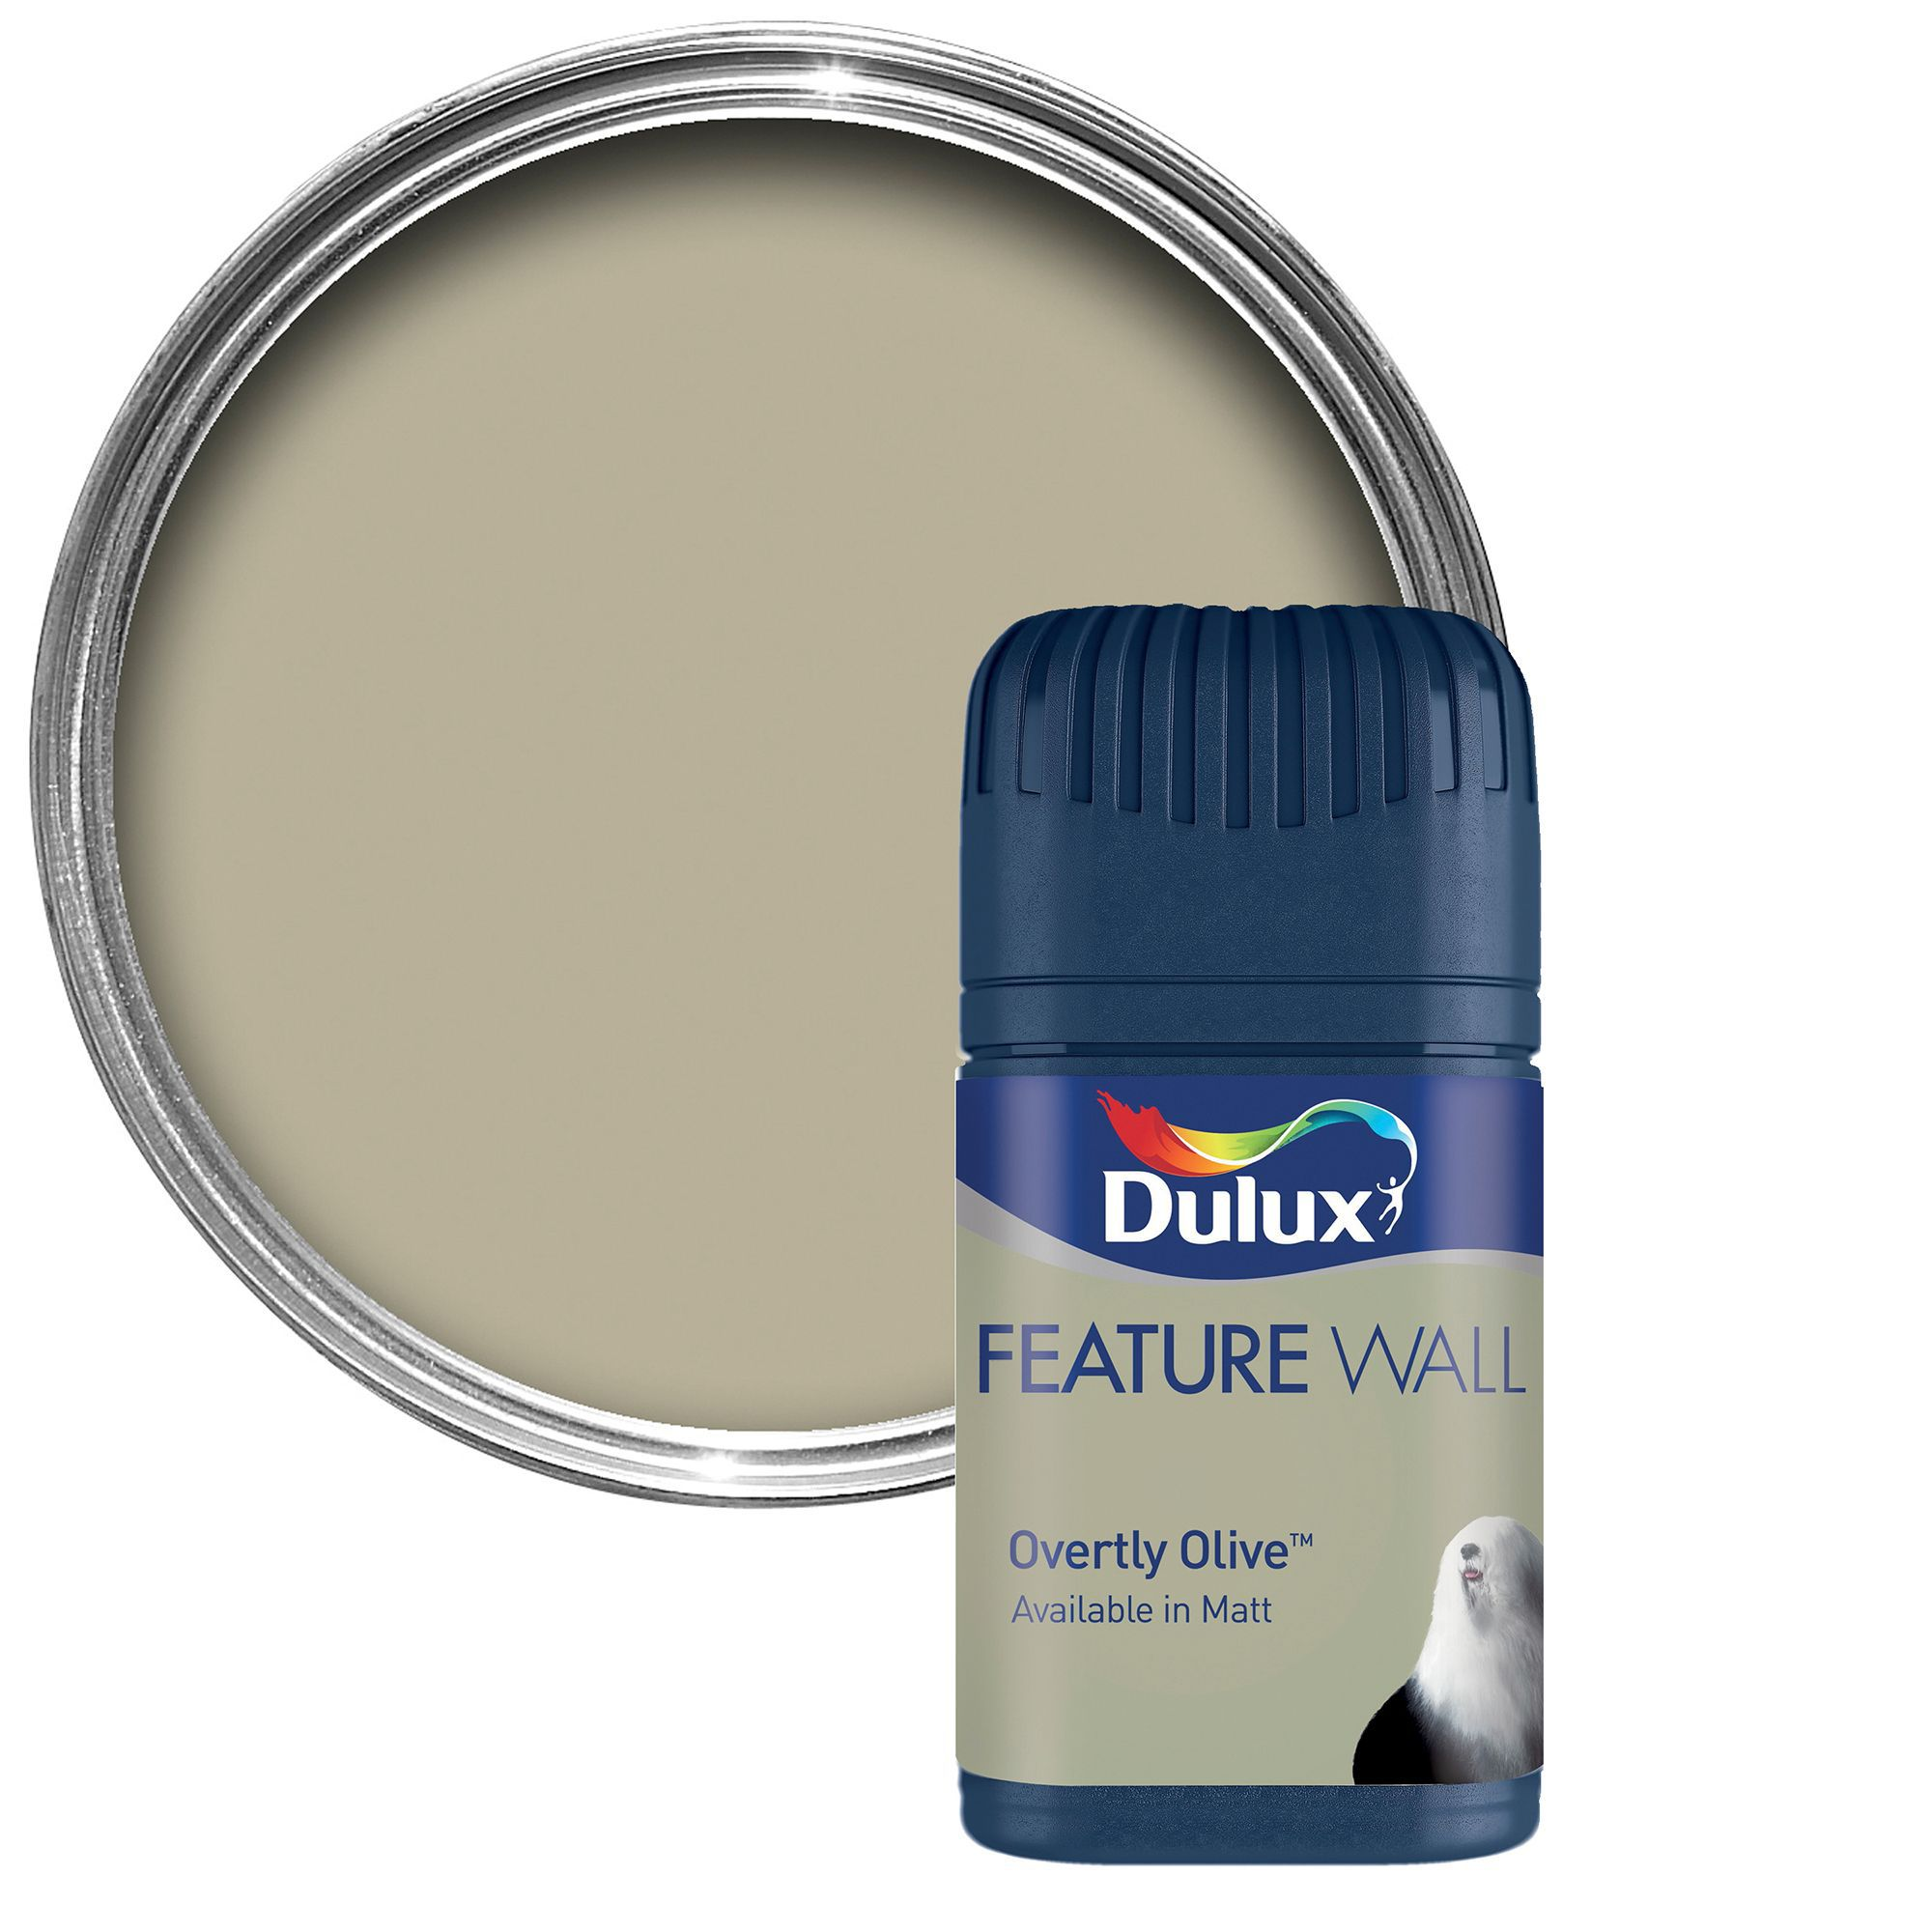 Dulux Feature Wall Overtly Olive Matt Emulsion Paint 0.05L